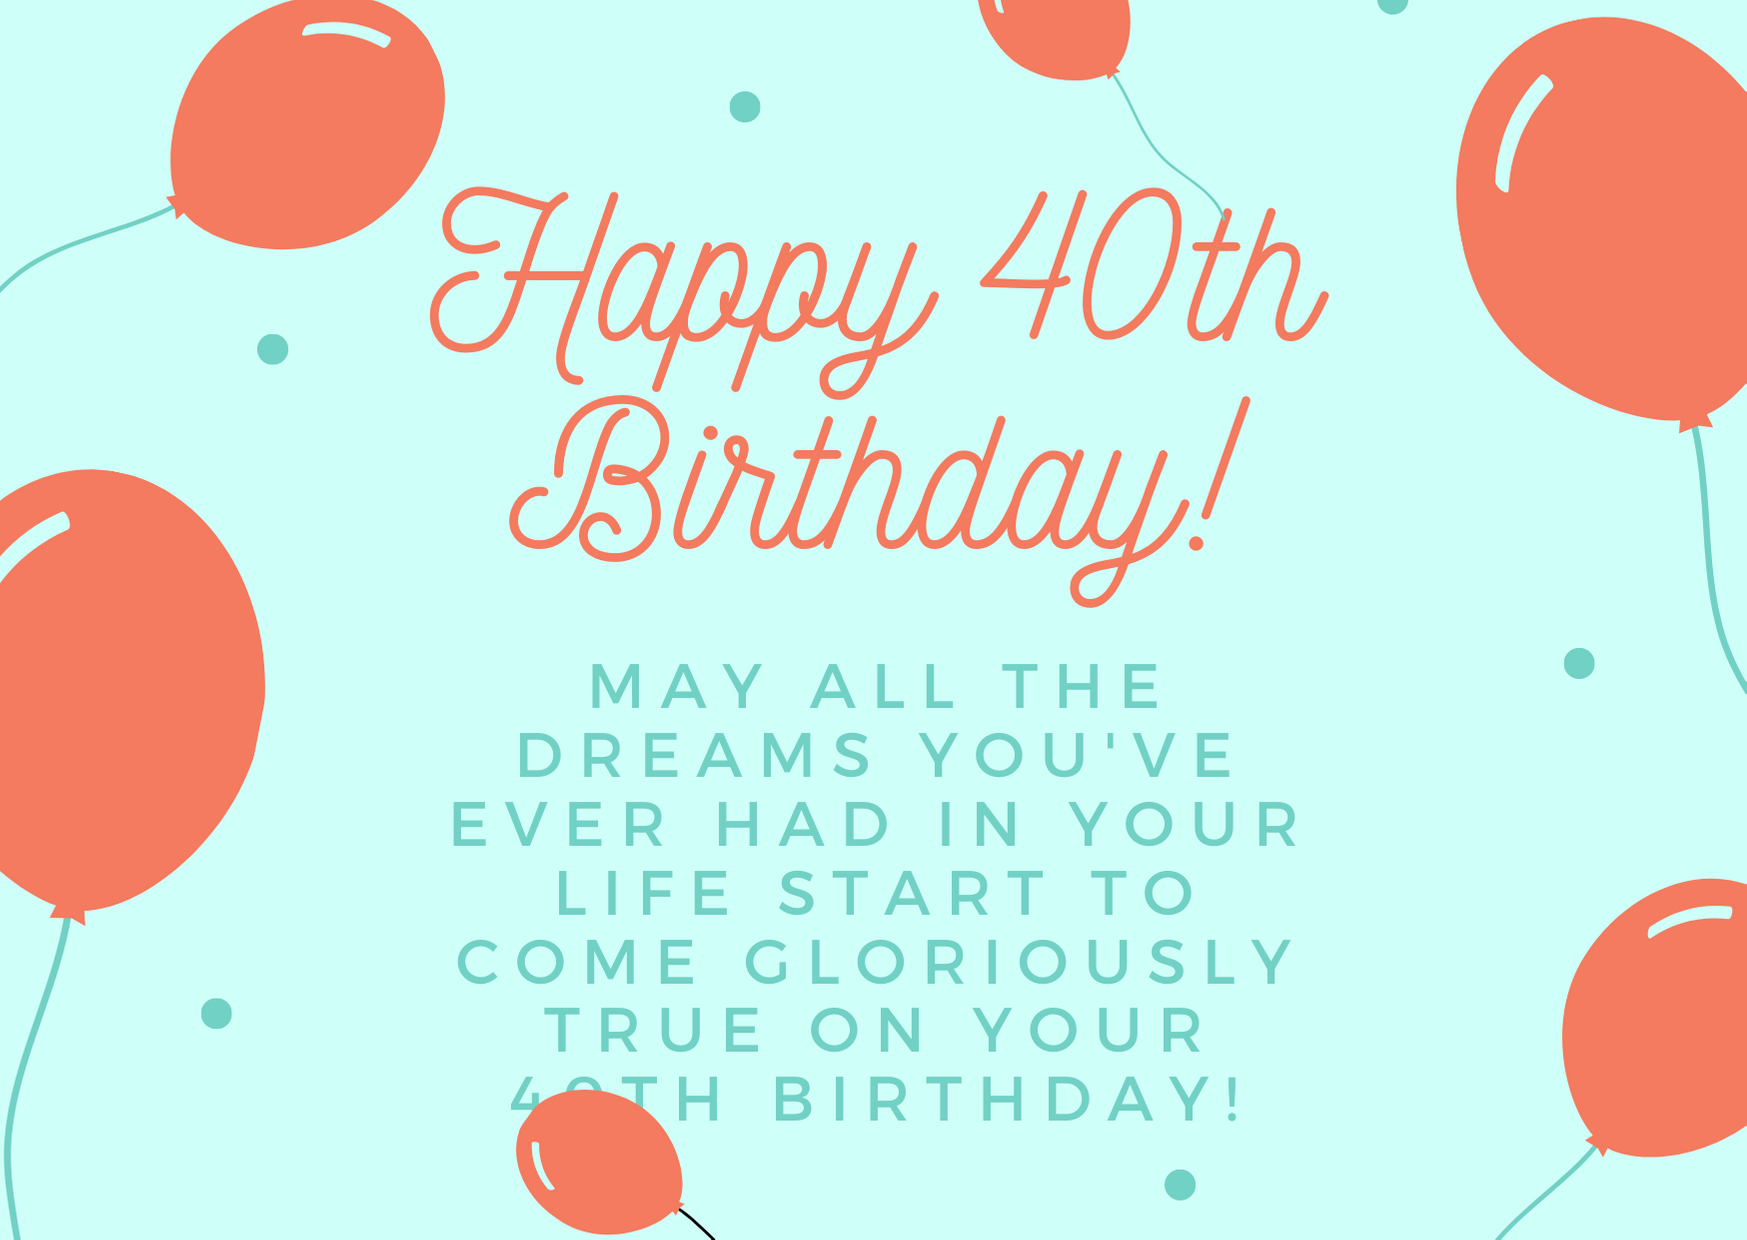 May all the dreams you've ever had in your life start to come gloriously true on your 40th birthday!